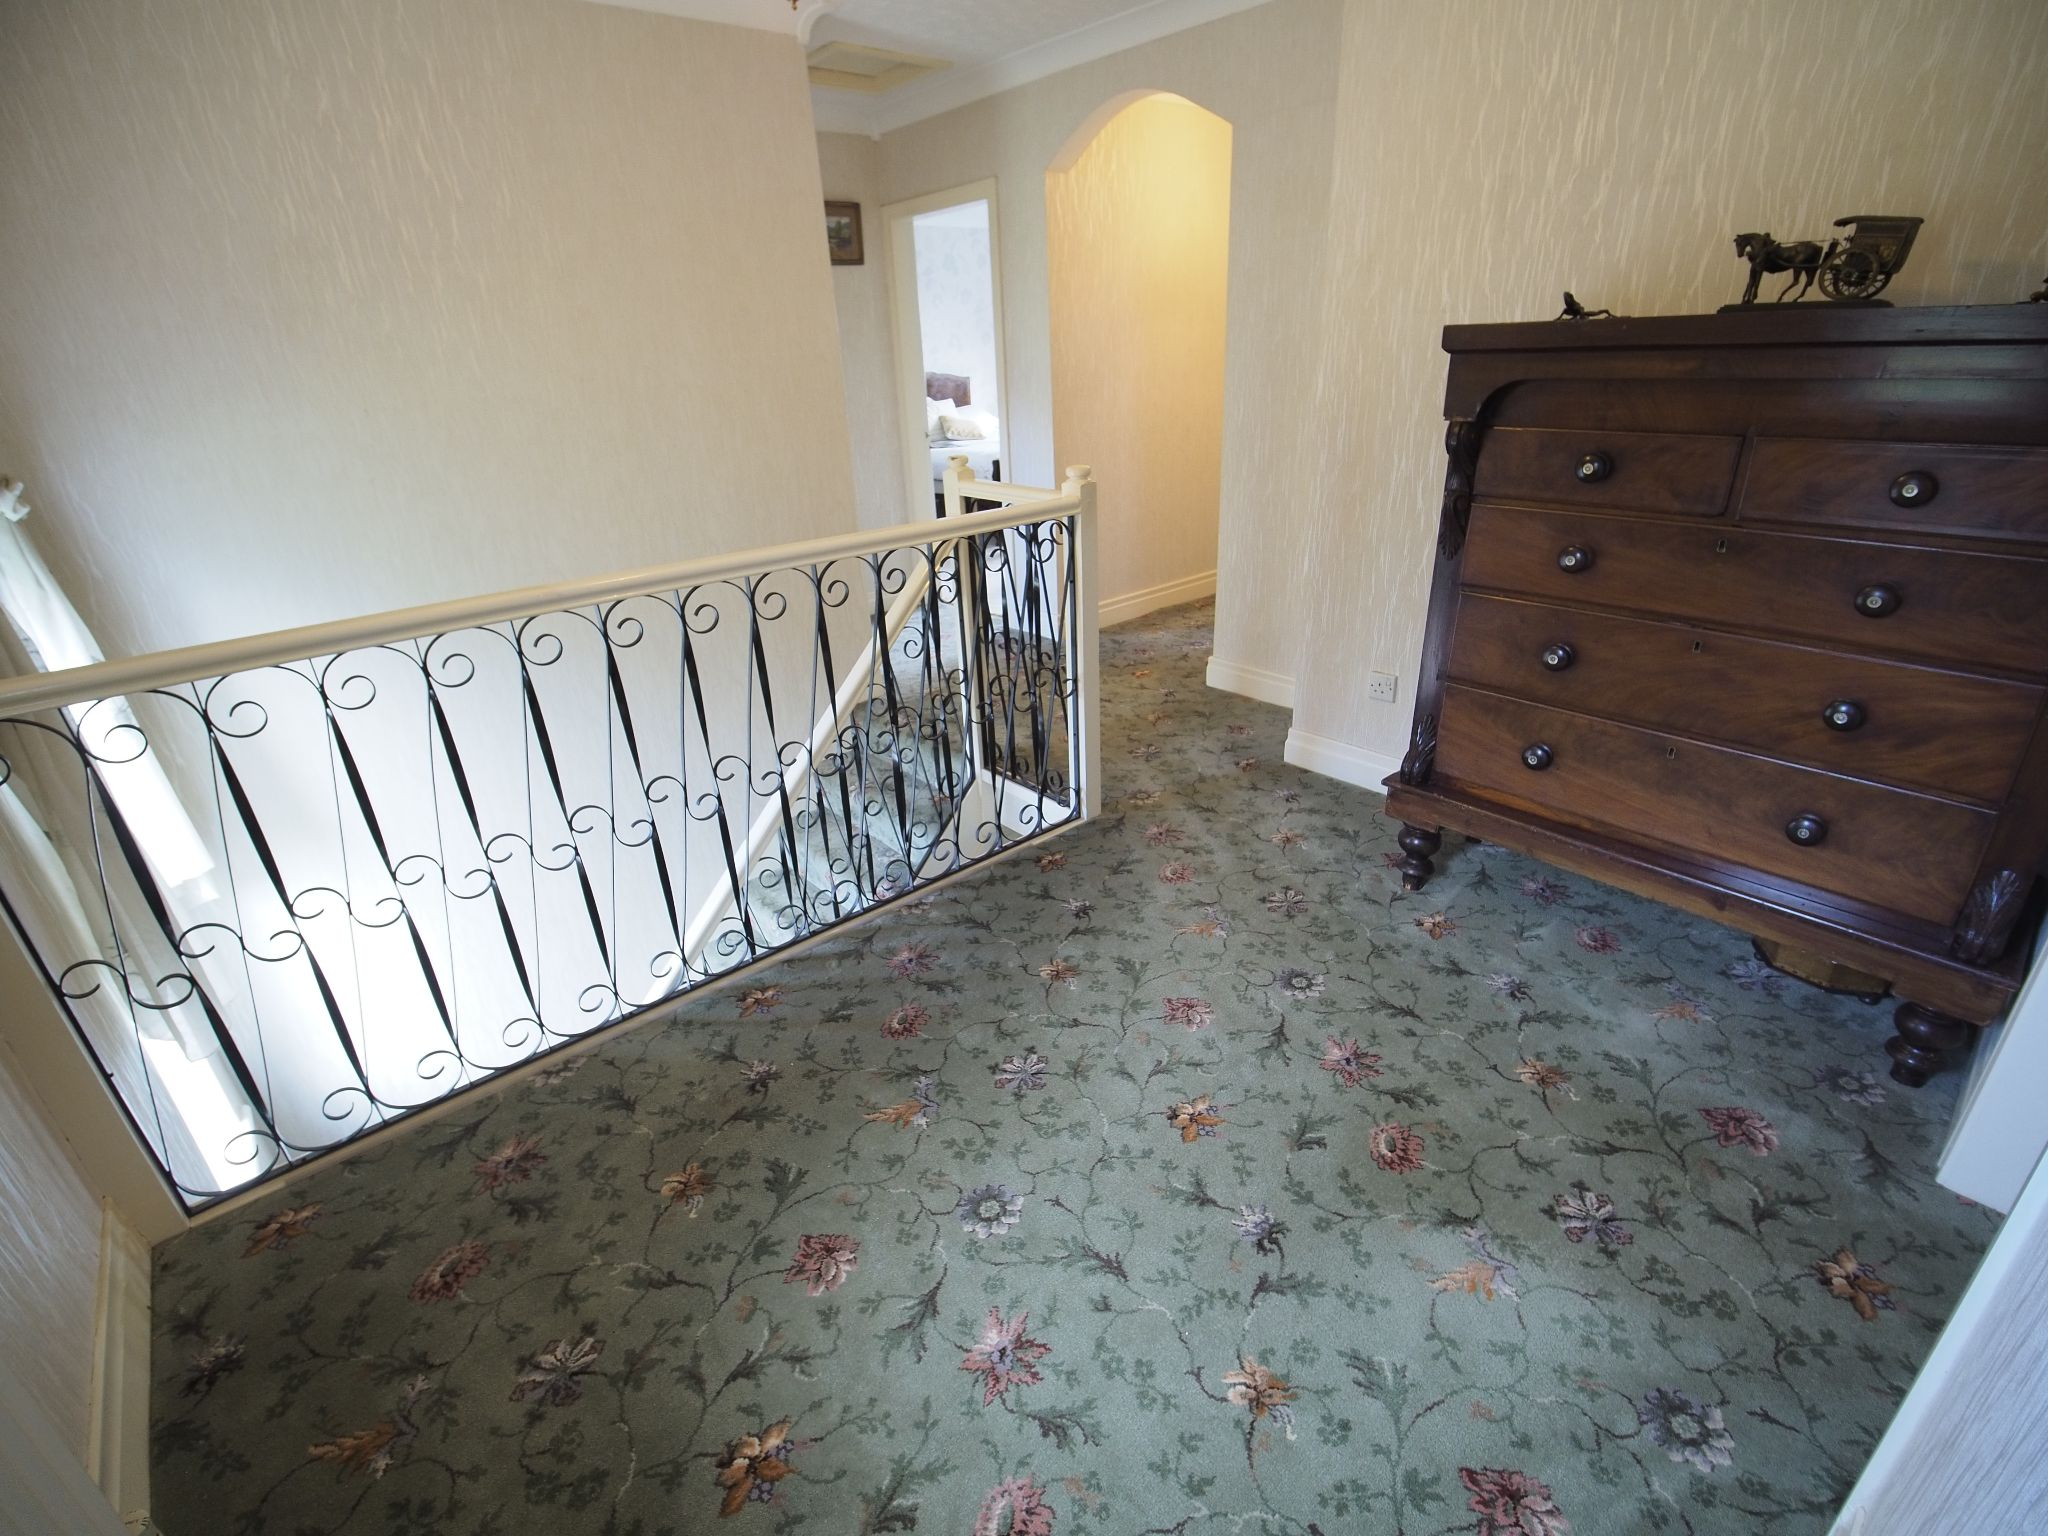 4 bedroom detached house For Sale in Willington - Landing.